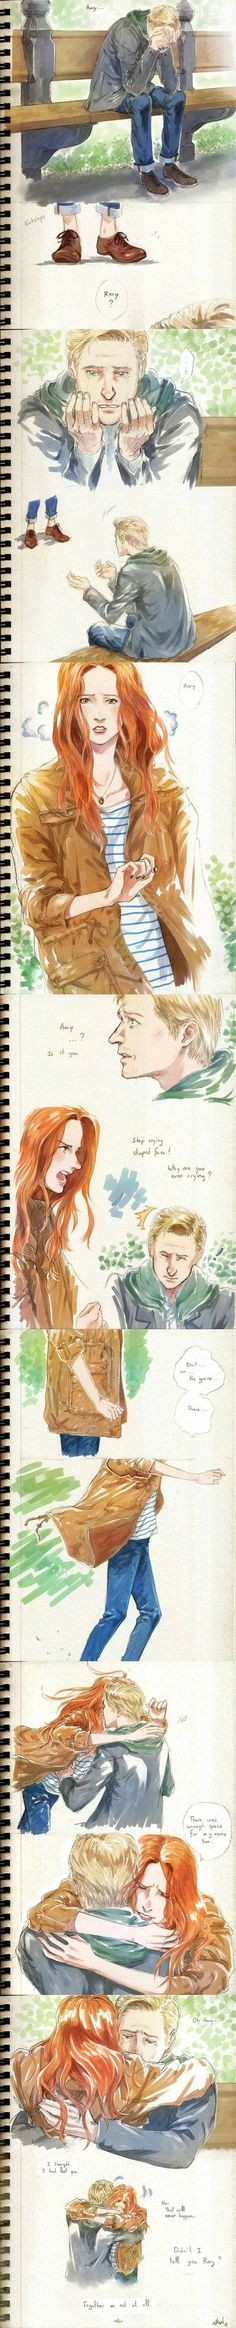 Oh, The Feels!!! My Ponds!!!!! I never thought of them like that until that moment on the roof top.